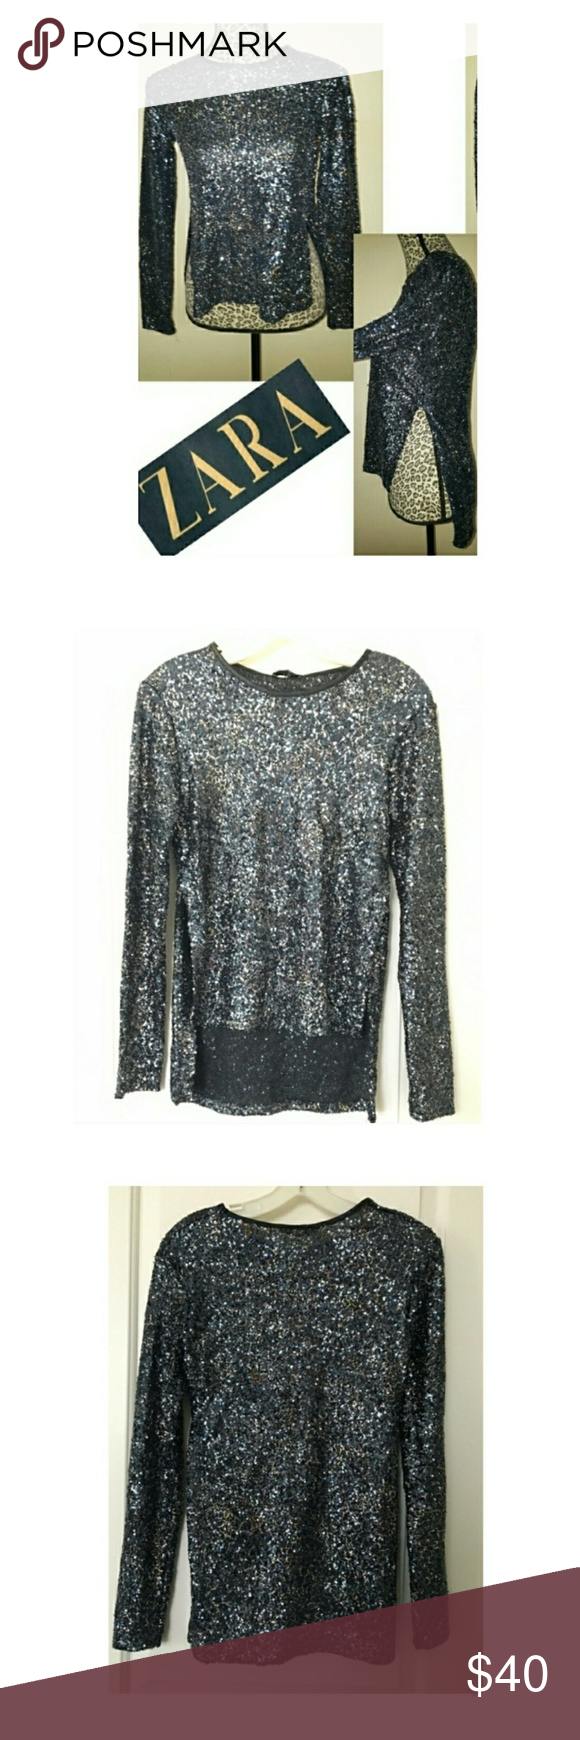 540af1dd Zara sequin blouse never been worn 🌟 Blue sequins combined with Gold  threading Split high low super Sexy Zara blue sequin blouse has flecks of  gold too- ...